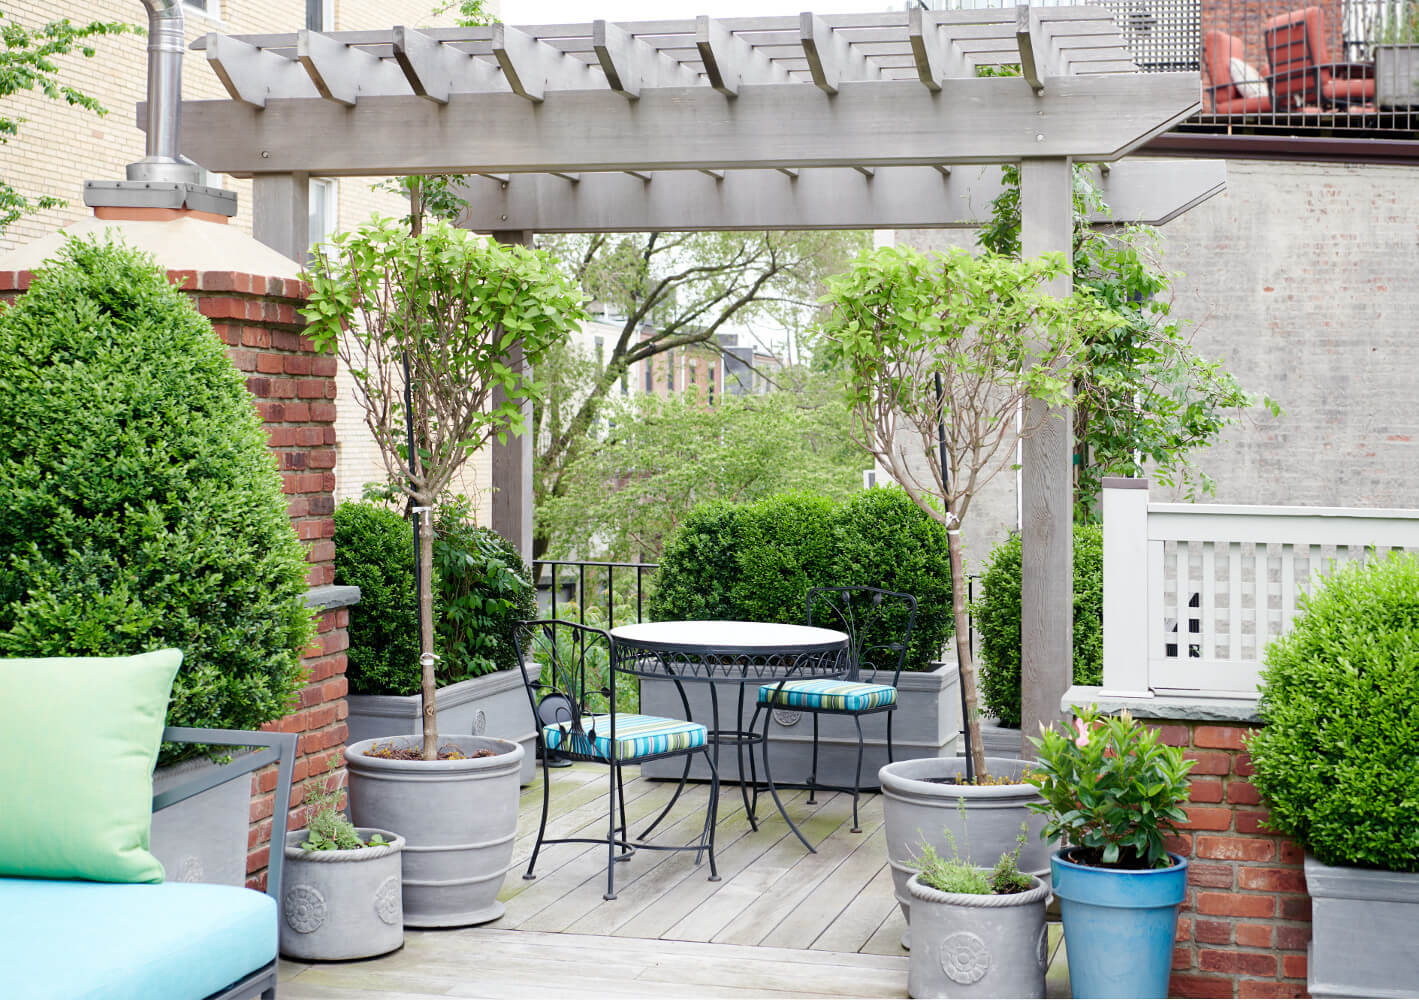 The roof deck for this Prospect Park West twin house is lushly planted with boxwoods and wisteria.